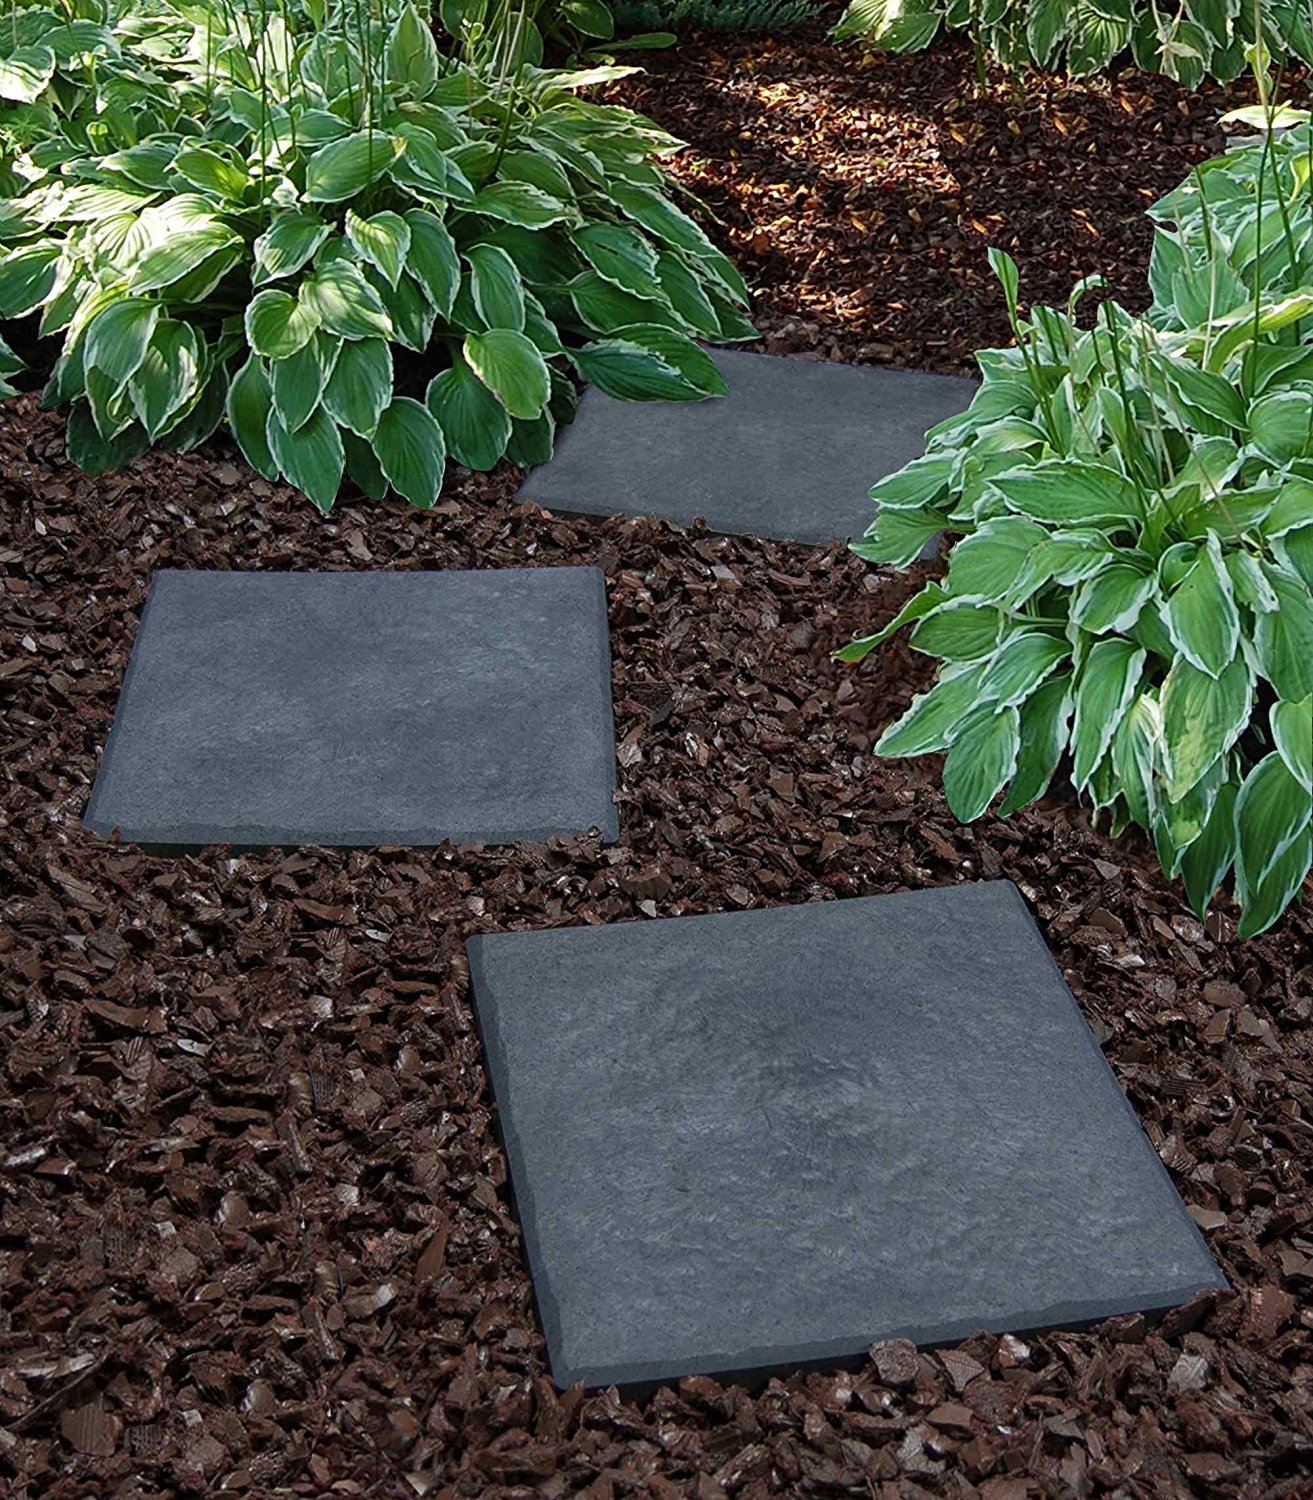 Can ceramic tile be used outdoors